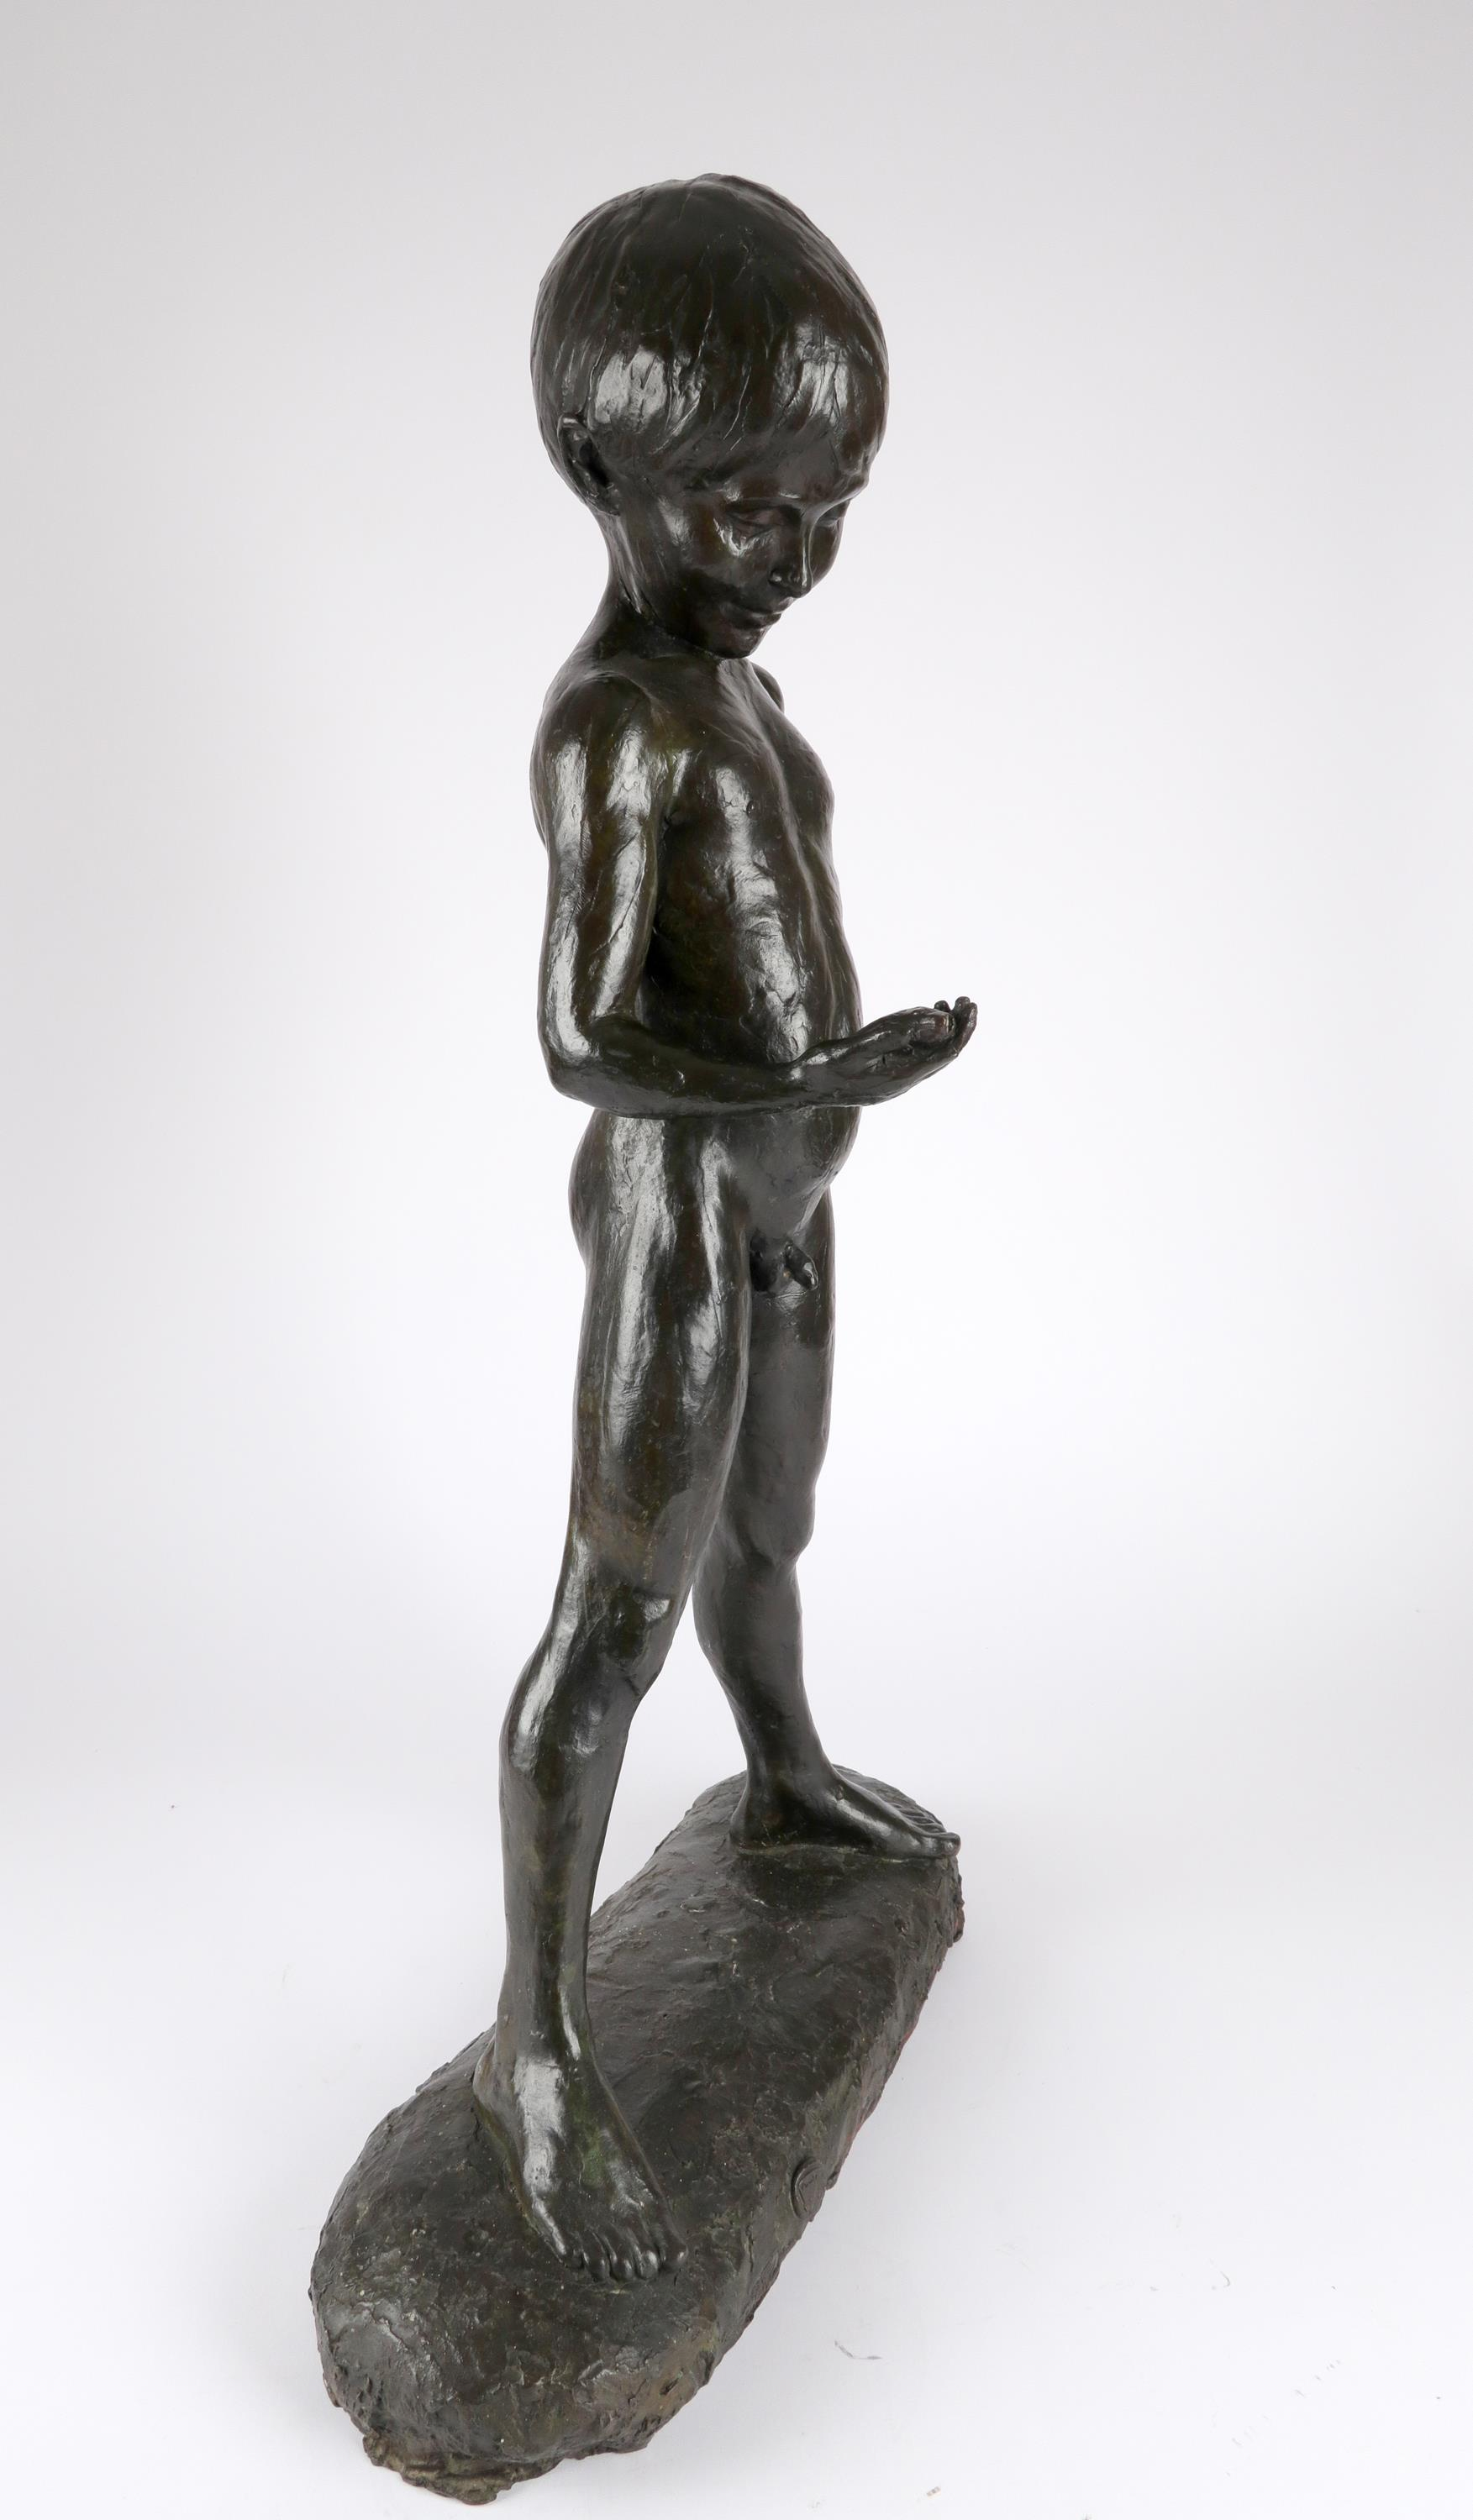 ‡Enzo Plazzotta (Italian 1921-1991) The fisherboy Stamped with signature and number Plazzotta/3/9, - Image 2 of 4